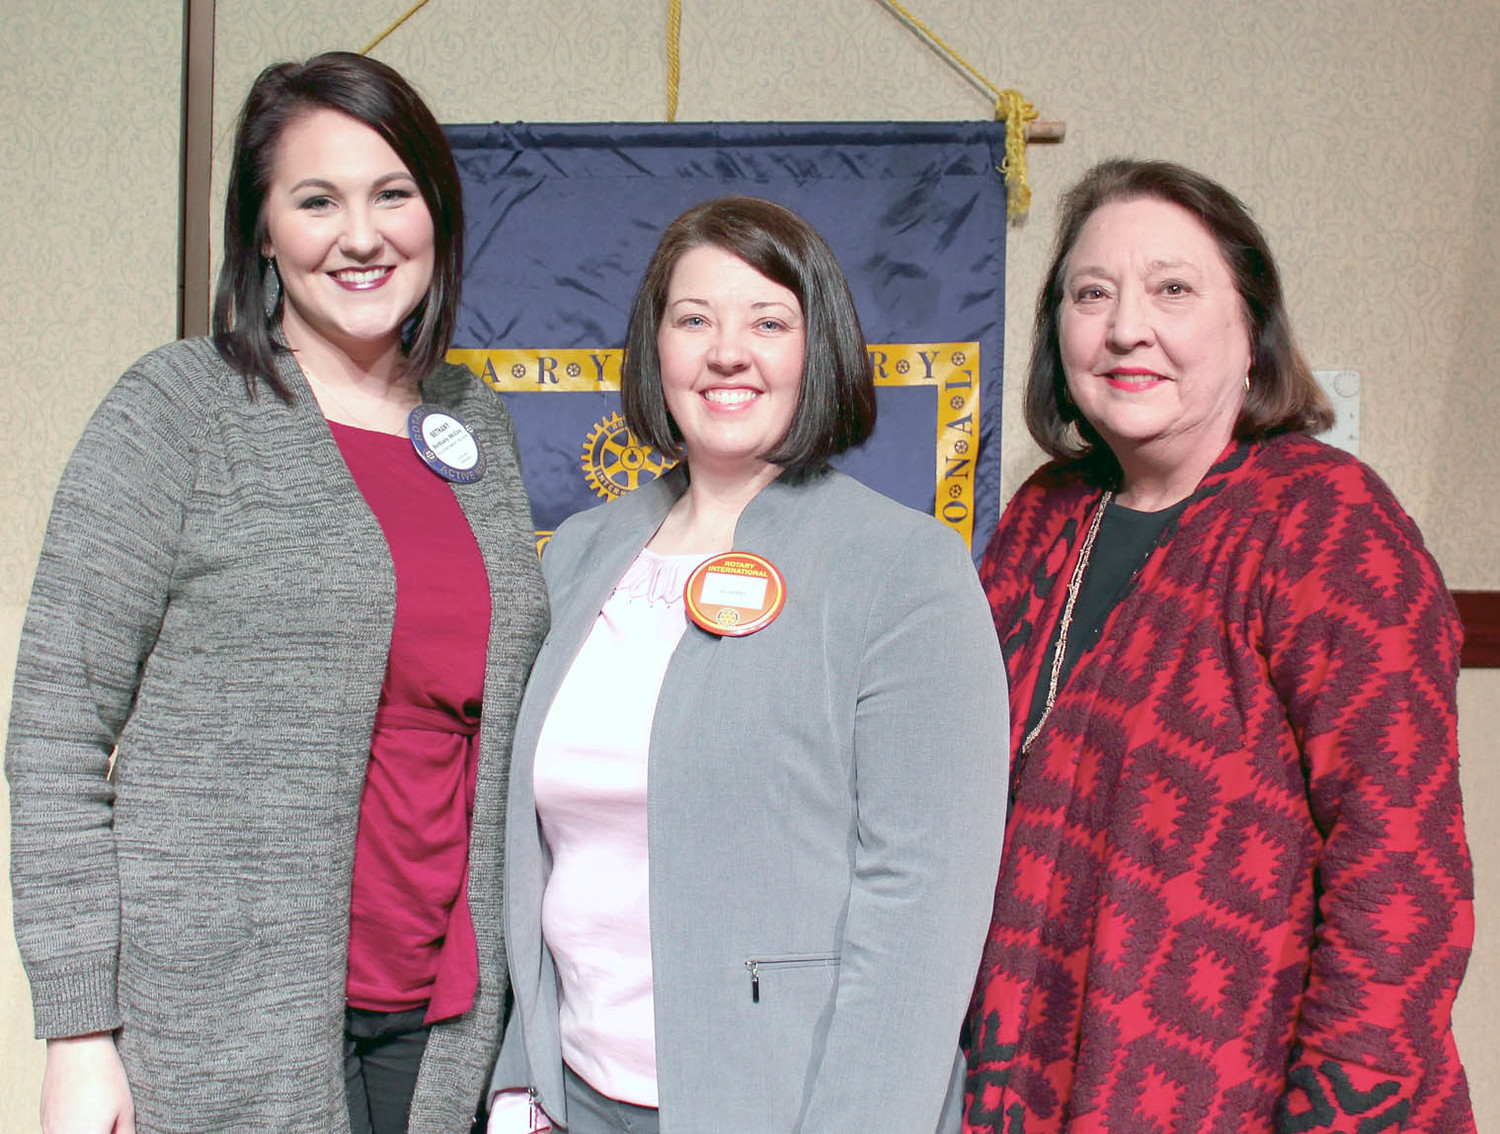 JUNIOR ACHIEVEMENT of the Ocoee Region and its programs were the focus of a recent Cleveland Rotary Club meeting. From left are JA board member Bethany McCoy, JA President Jennifer Pennell-Aslinger and JA volunteer Margaret Schenck.